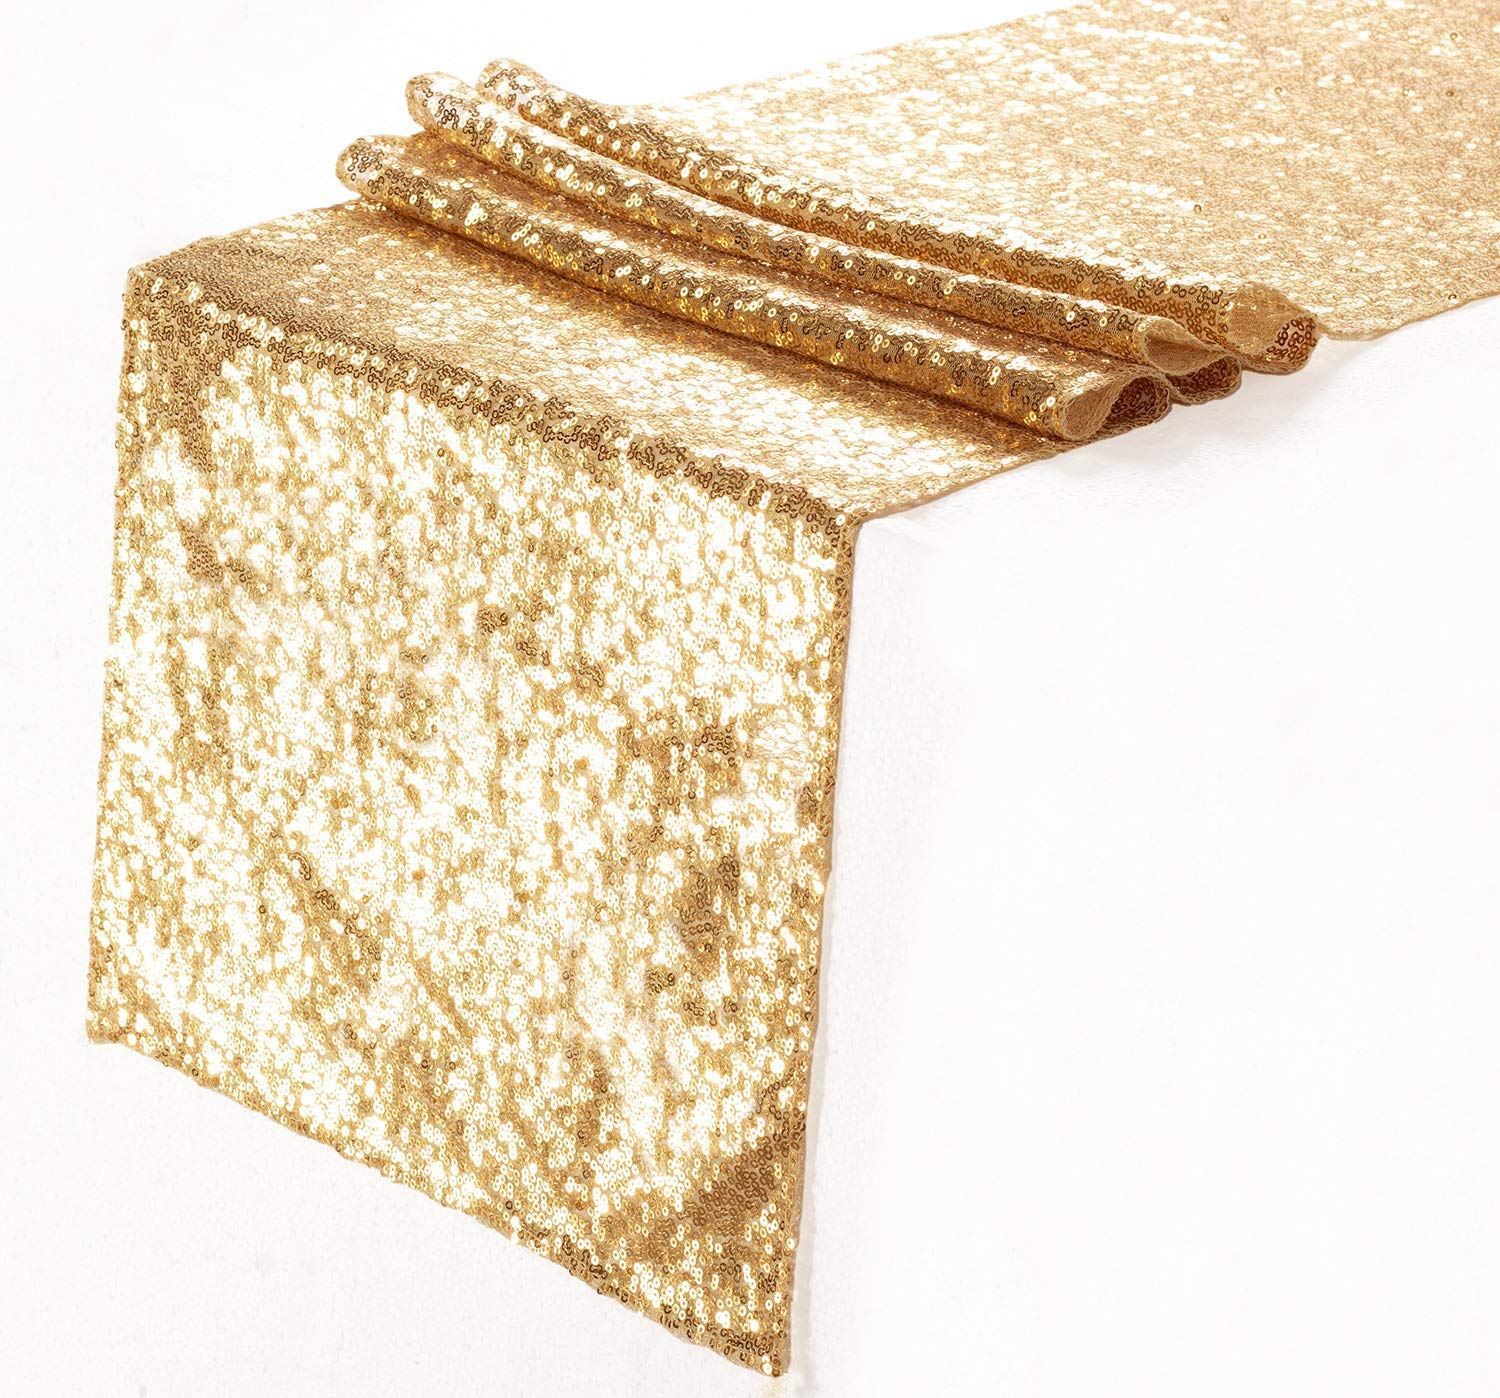 Eternal Beauty Sequin Table Runners Gold 12'' X 120'' Glitter Gold Table Runner-Gold Event Party Supplies Fabric Decorations for Wedding Birthday Baby Shower